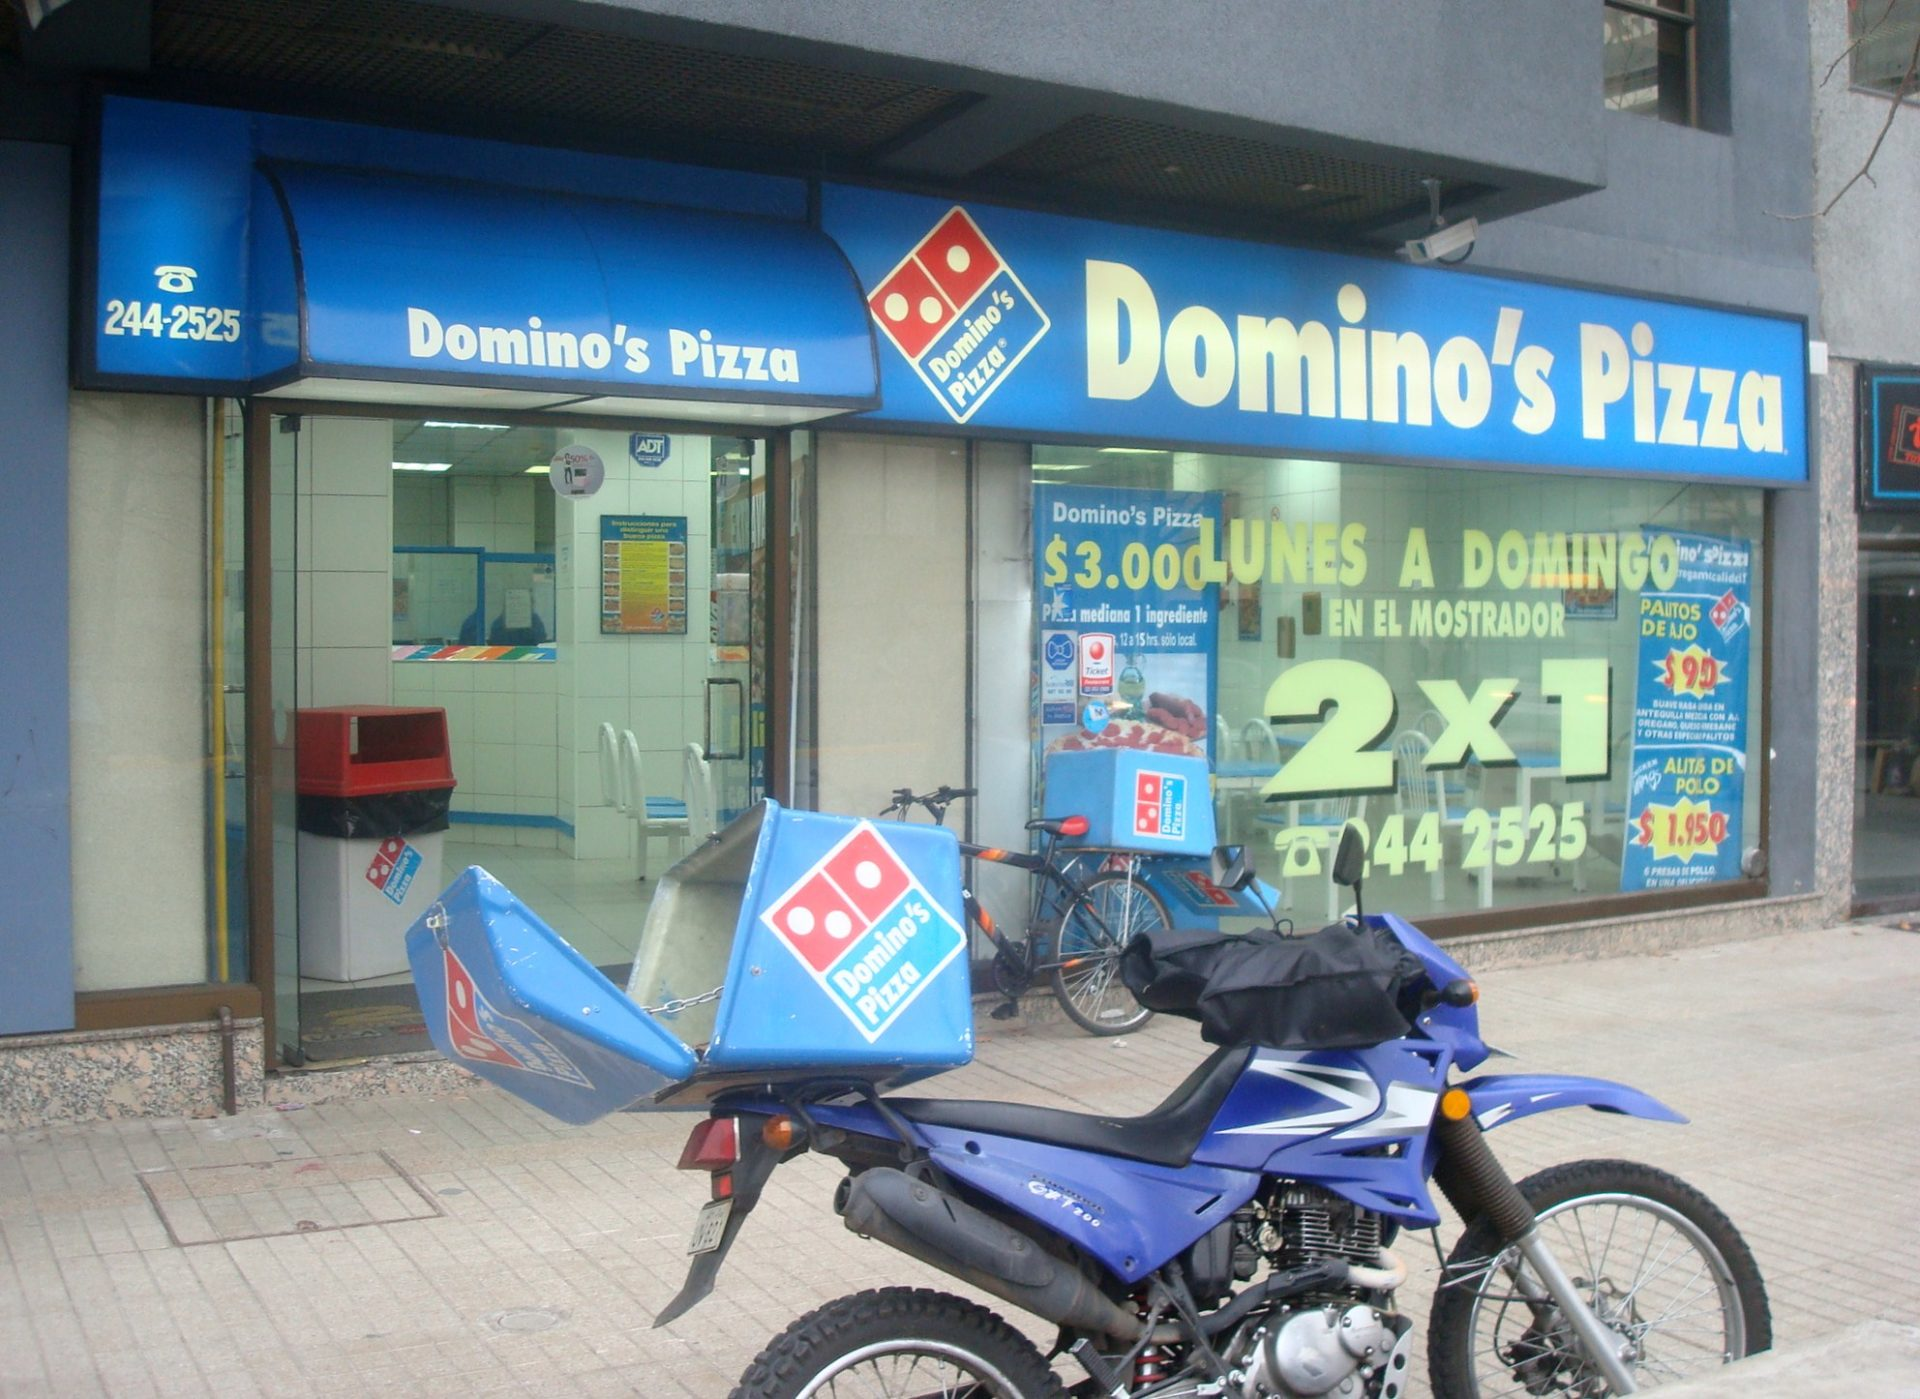 Multi-Billion-Dollar Store, Domino's Pizza Now Accepts Bitcoin 13